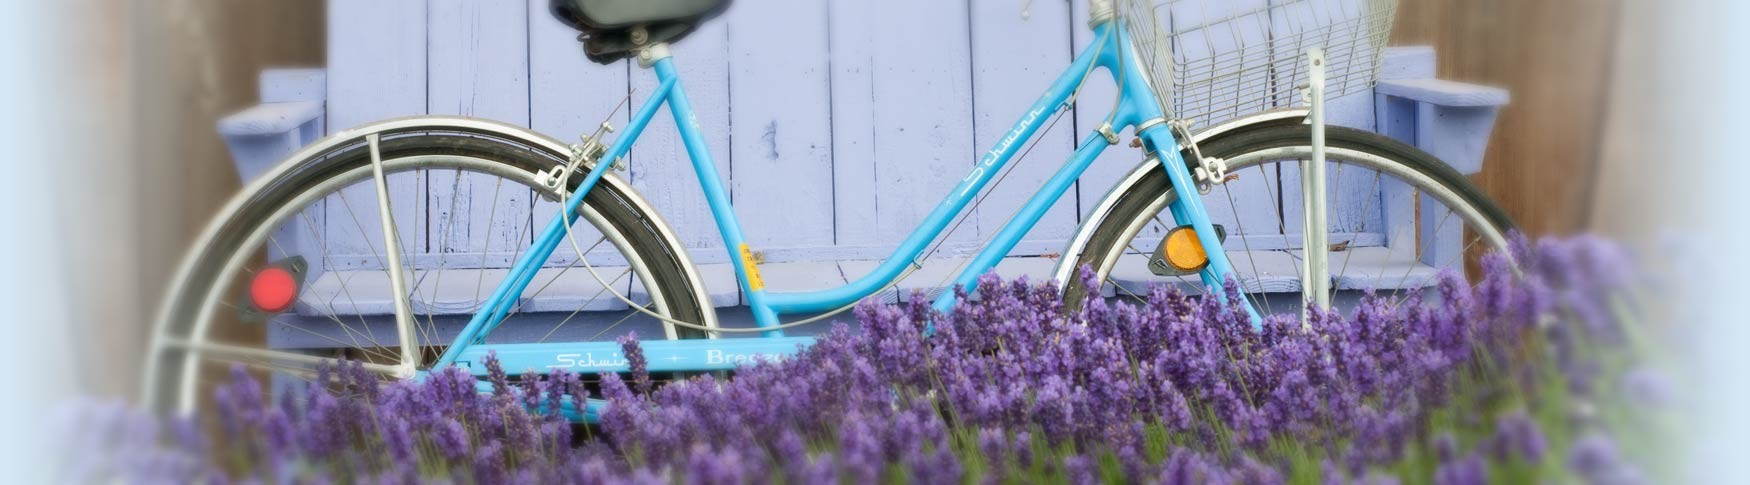 bicycle in lavender